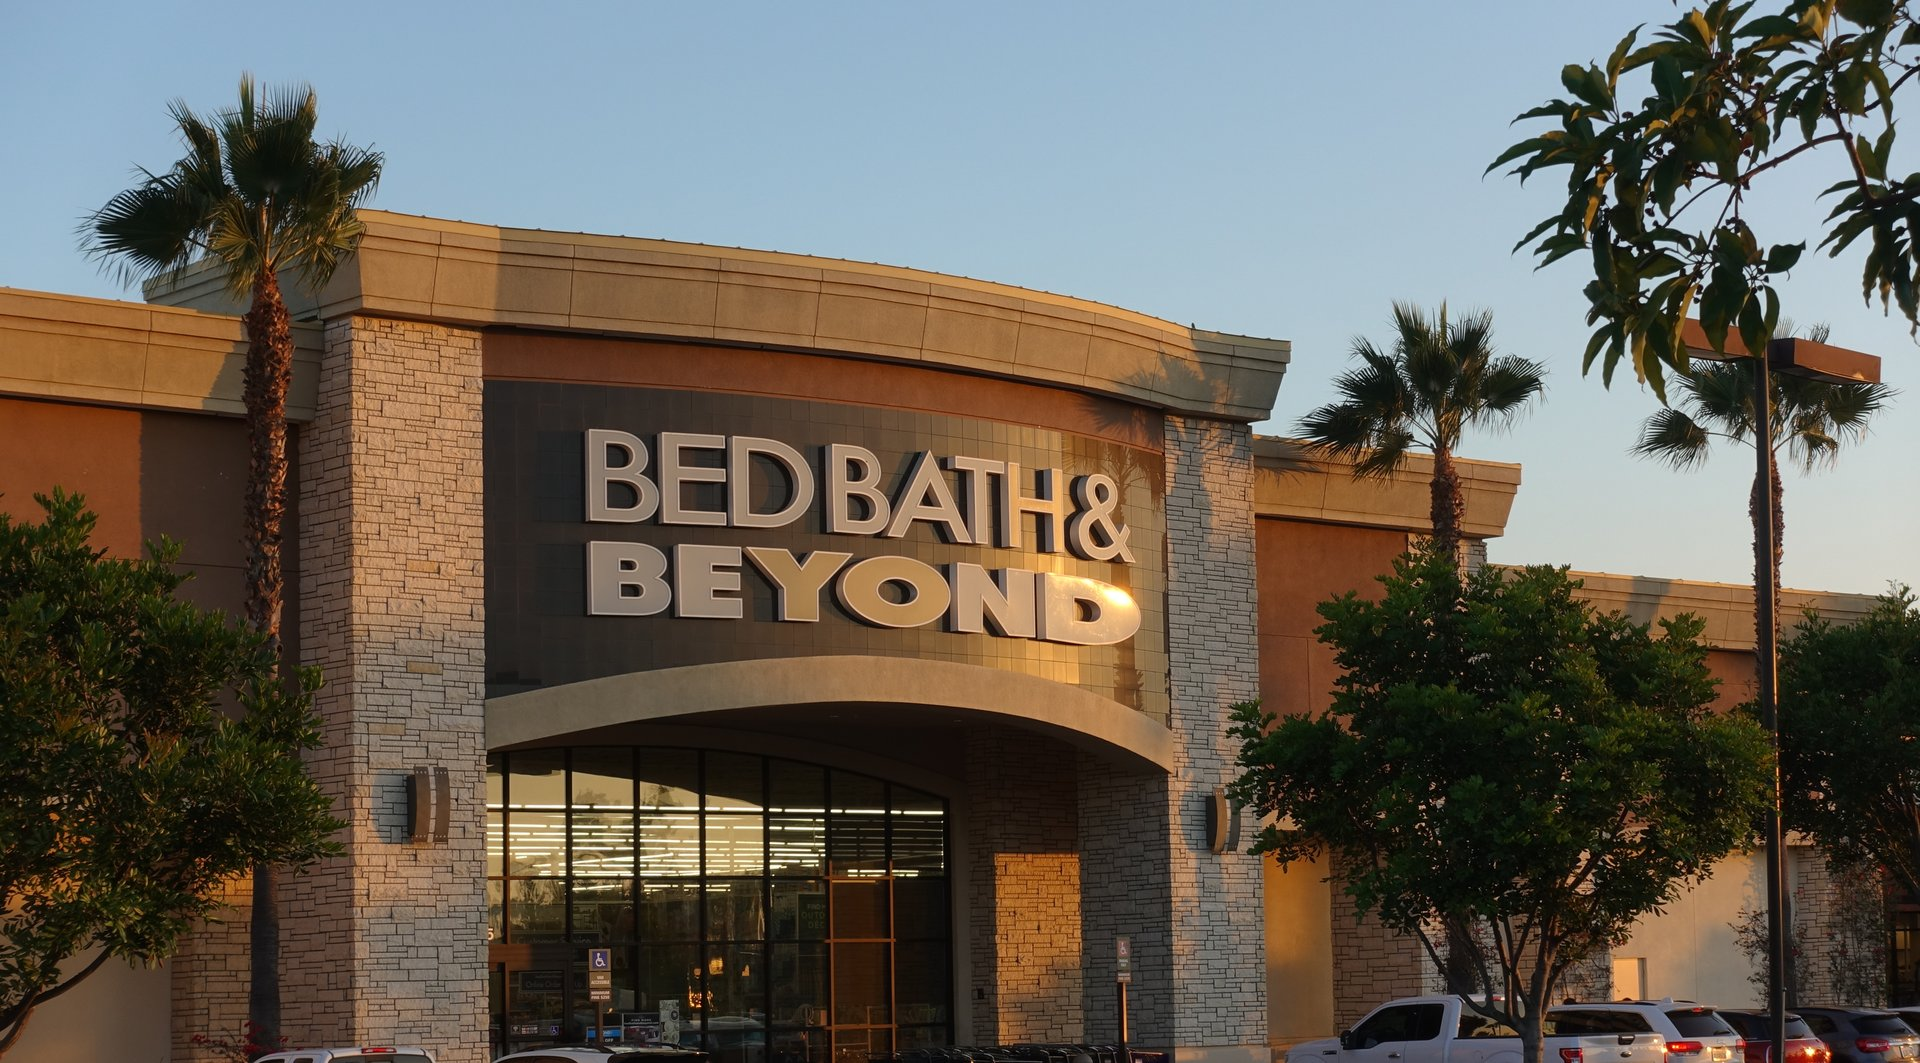 San Marcos, CA Storefront Bed Bath & Beyond California strip mall during golden hour